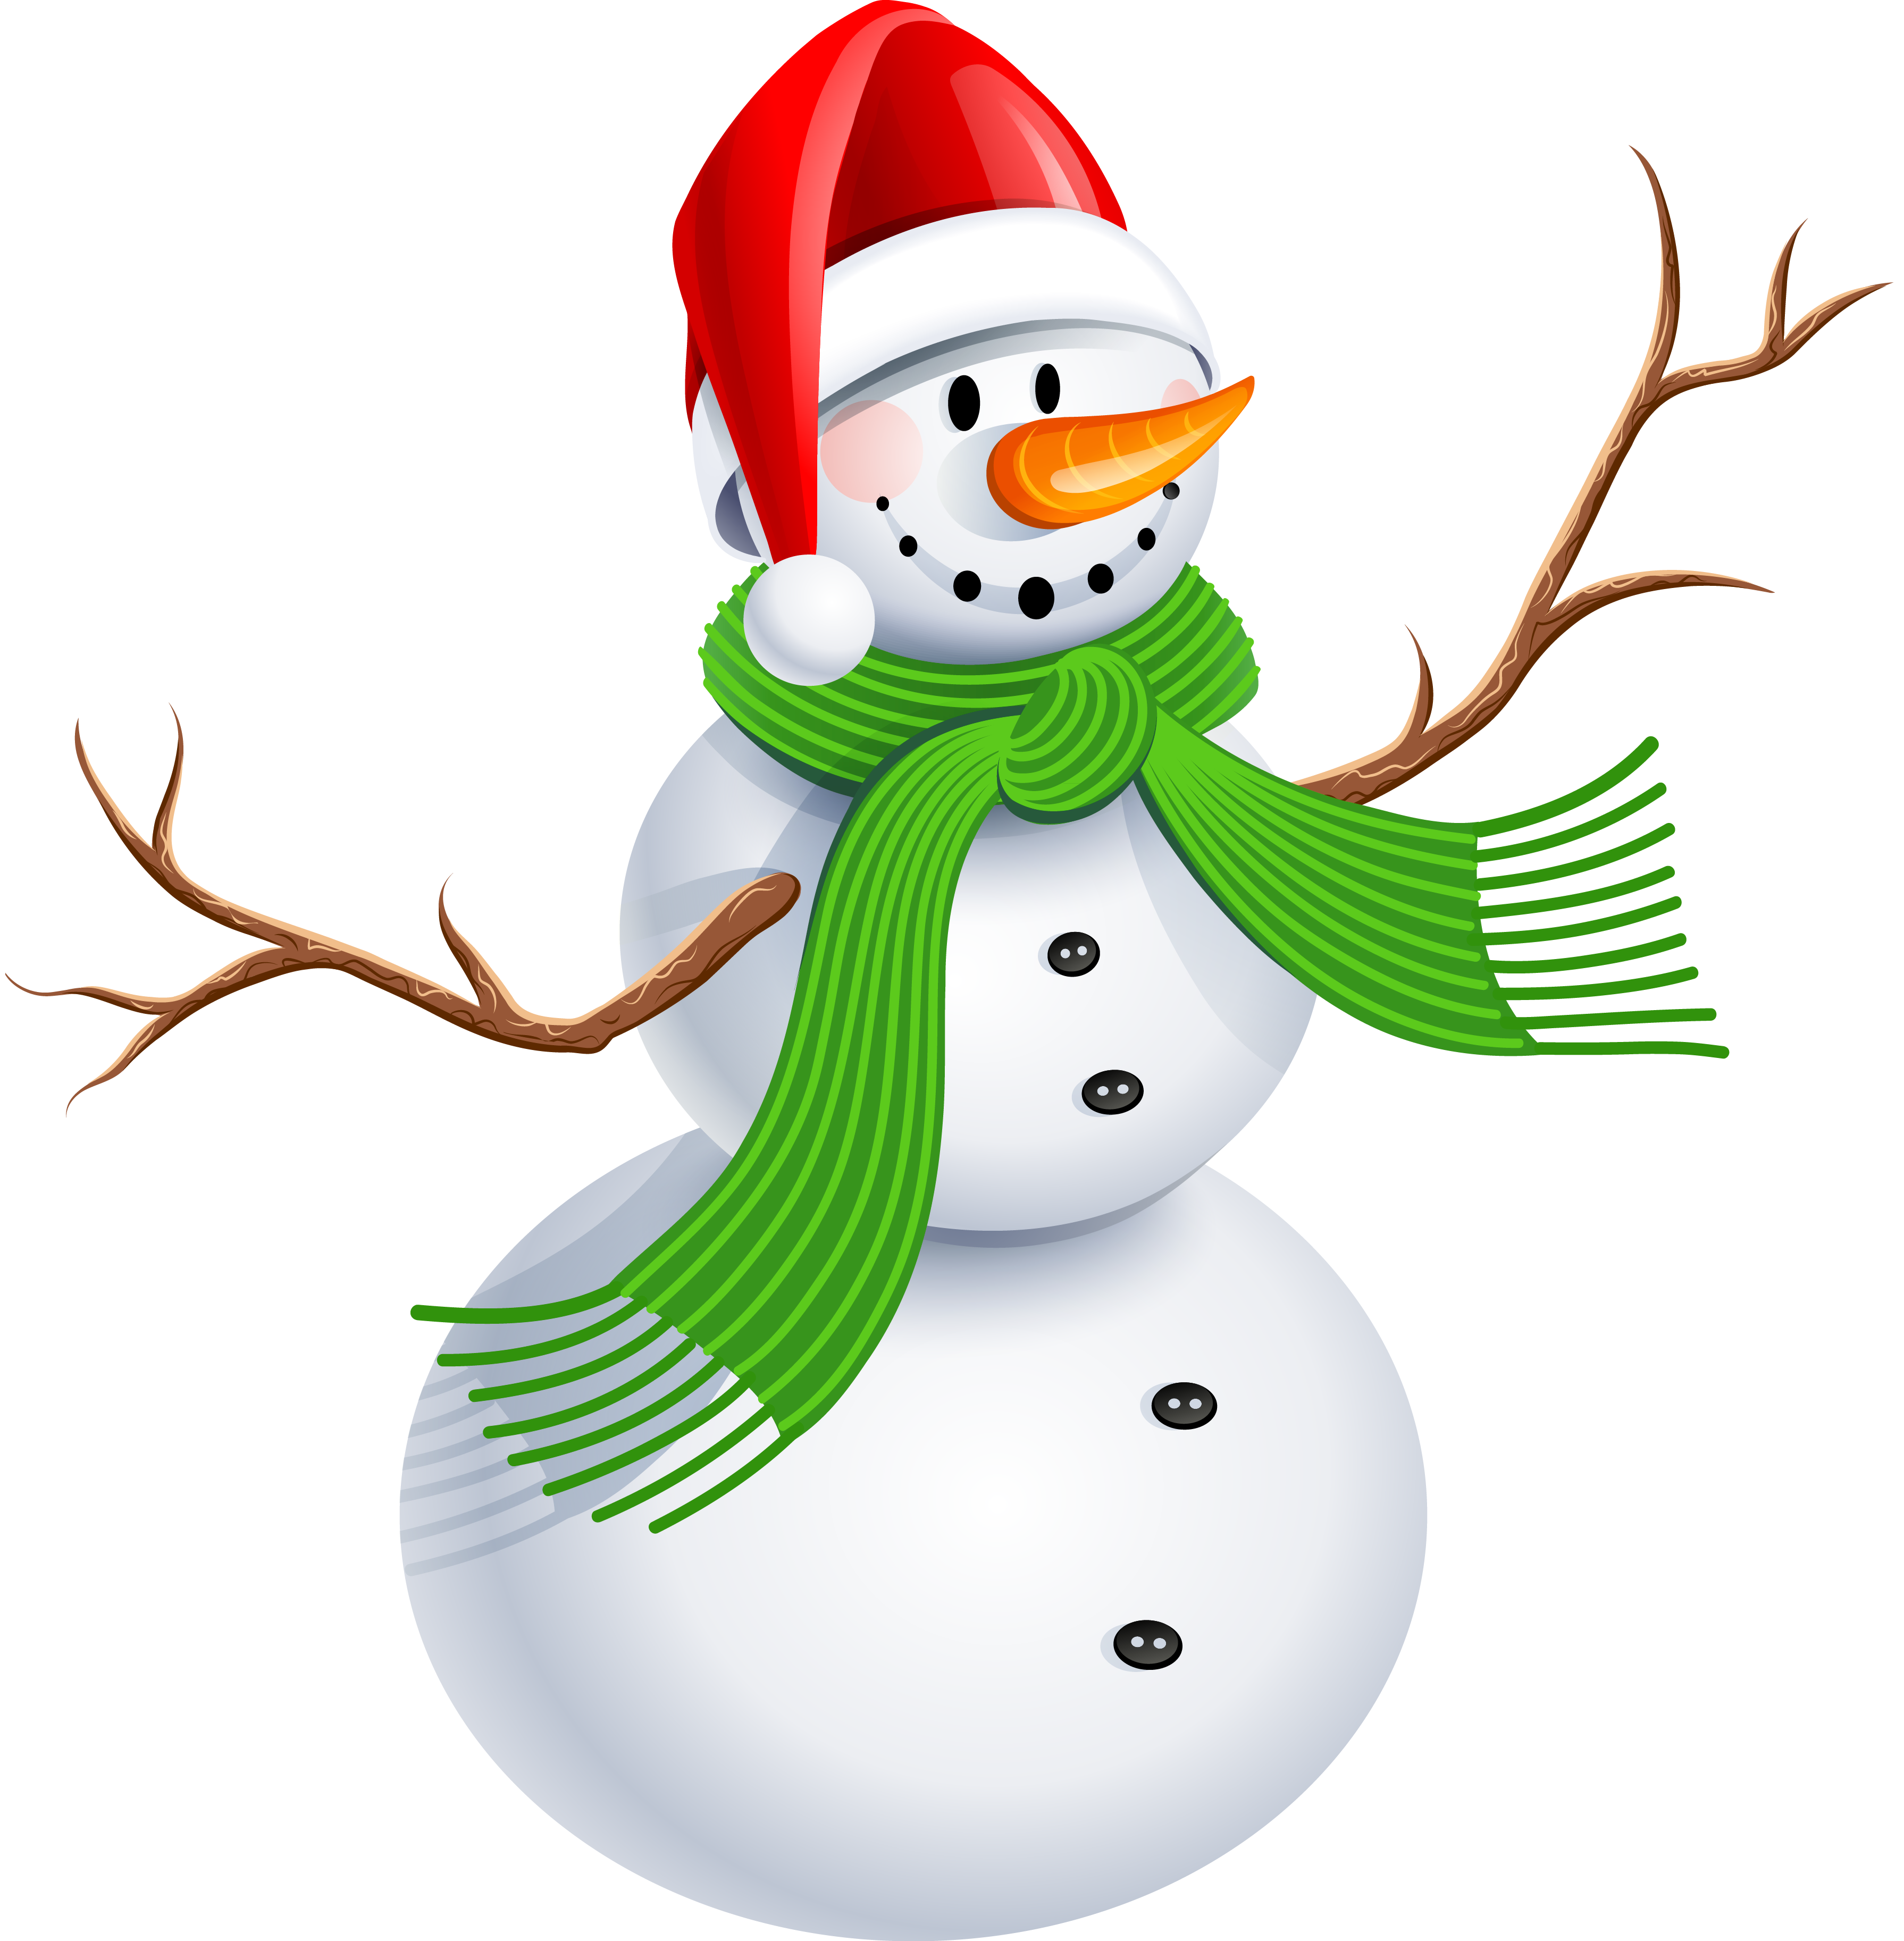 1950 s snowman clipart no background clipart images gallery.